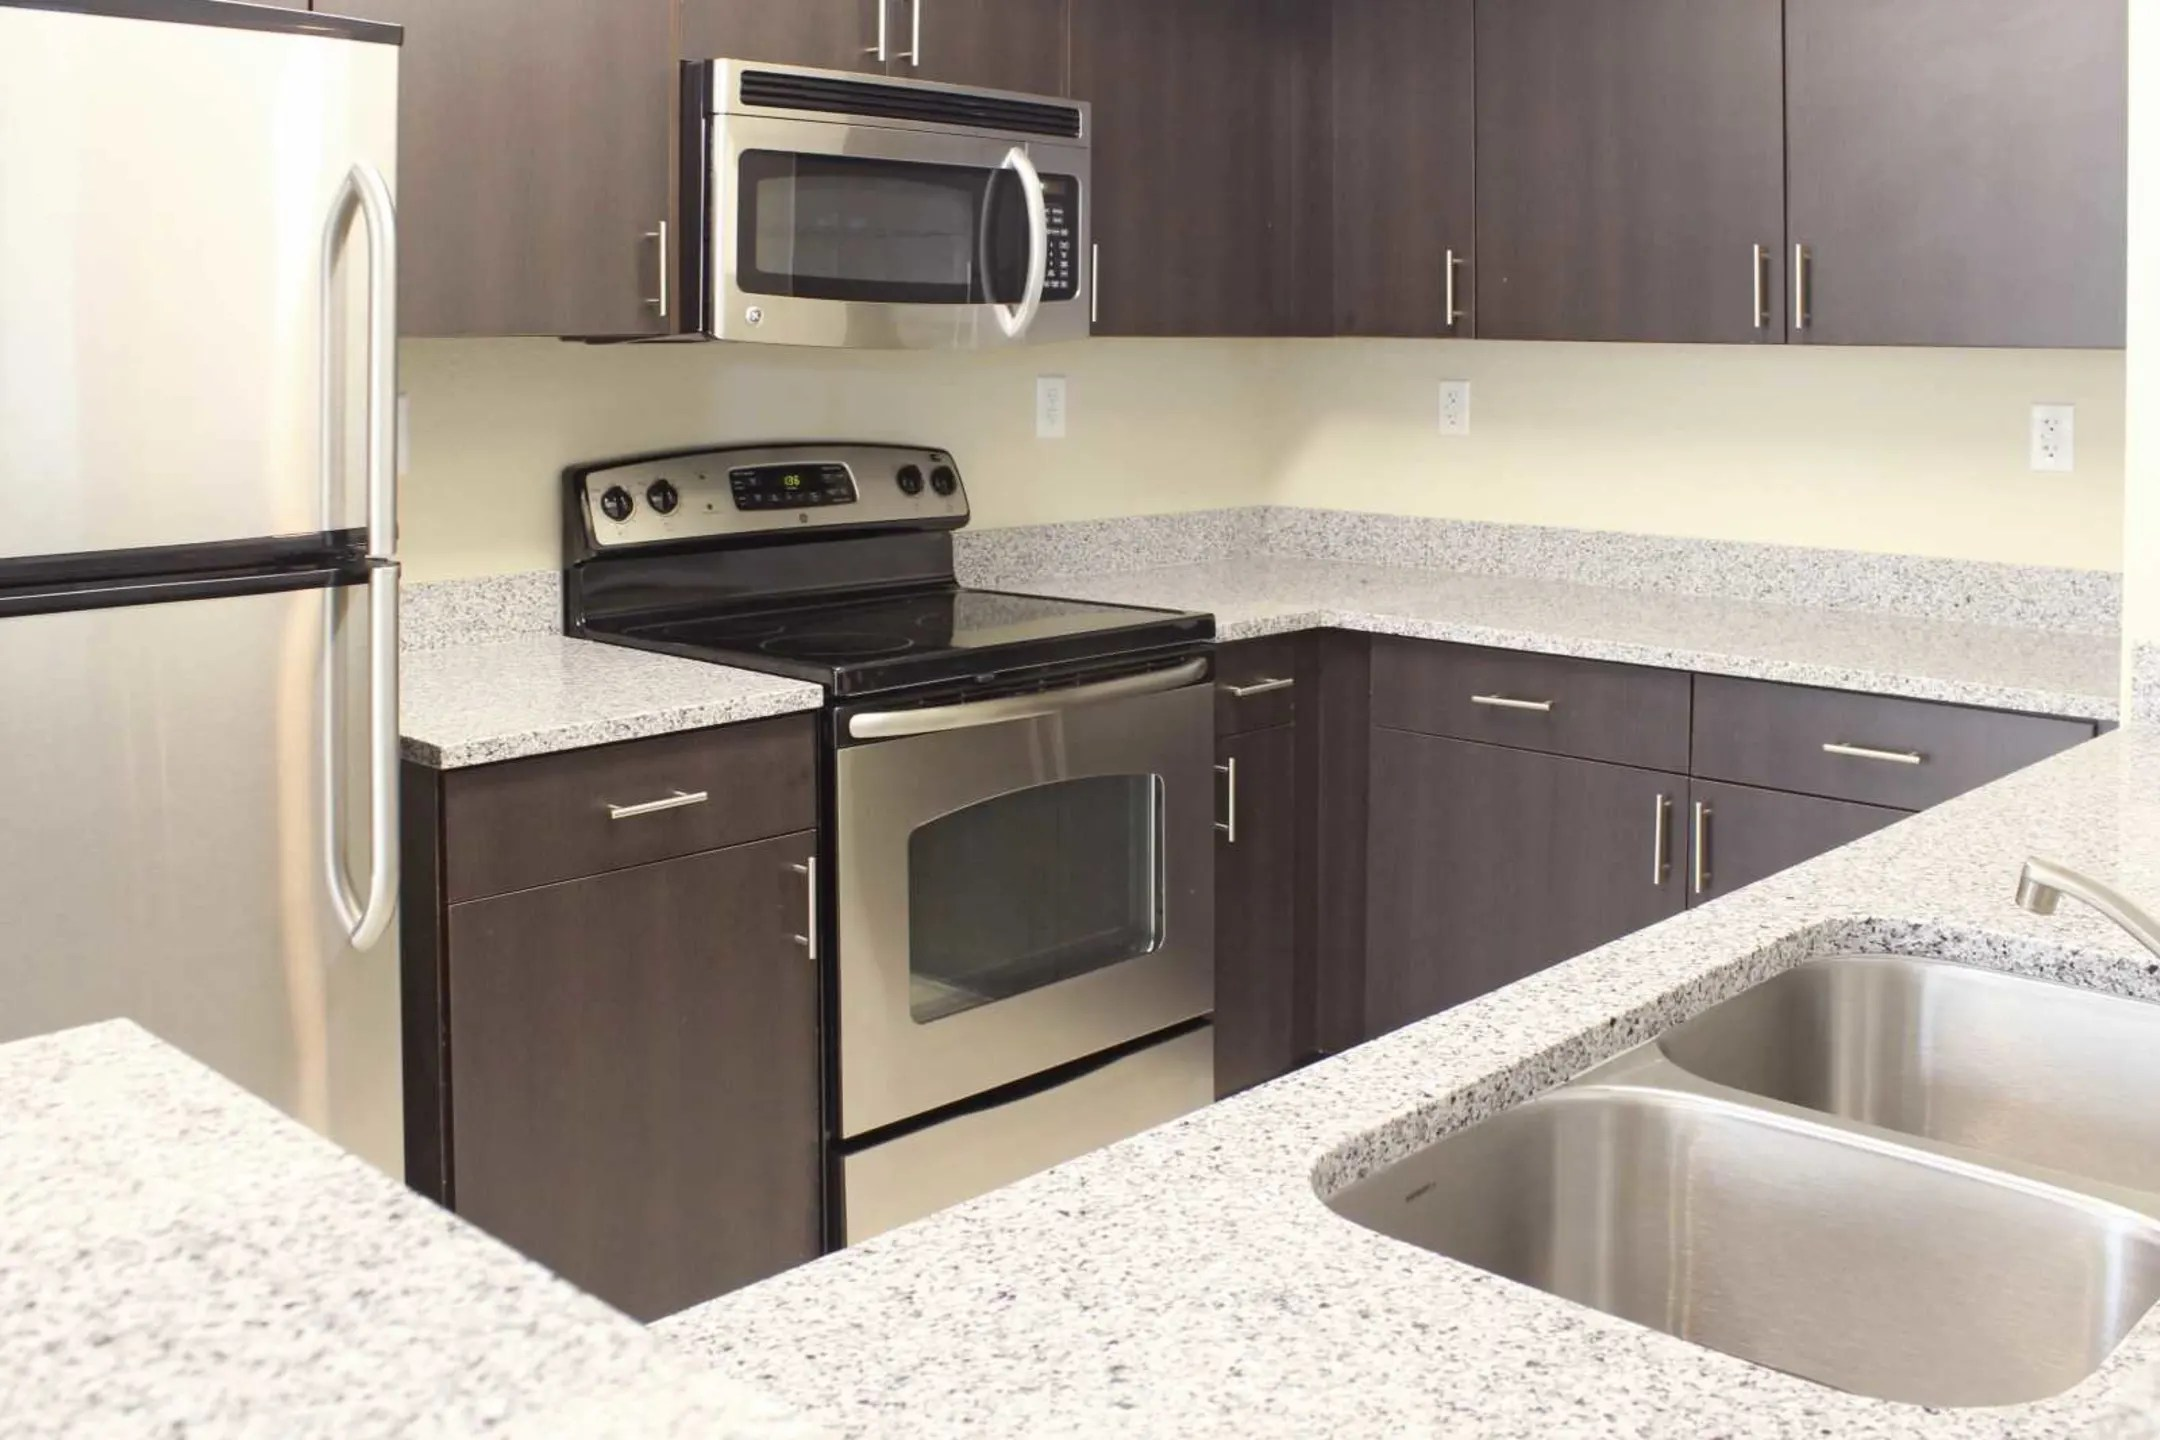 Apartments For Rent In Lake Worth Florida 33460 Lake Worth FlApartments For Rent In Lake Worth Fl   Amazing Bedroom  Living  . Apartments For Rent In Lake Worth Fl. Home Design Ideas